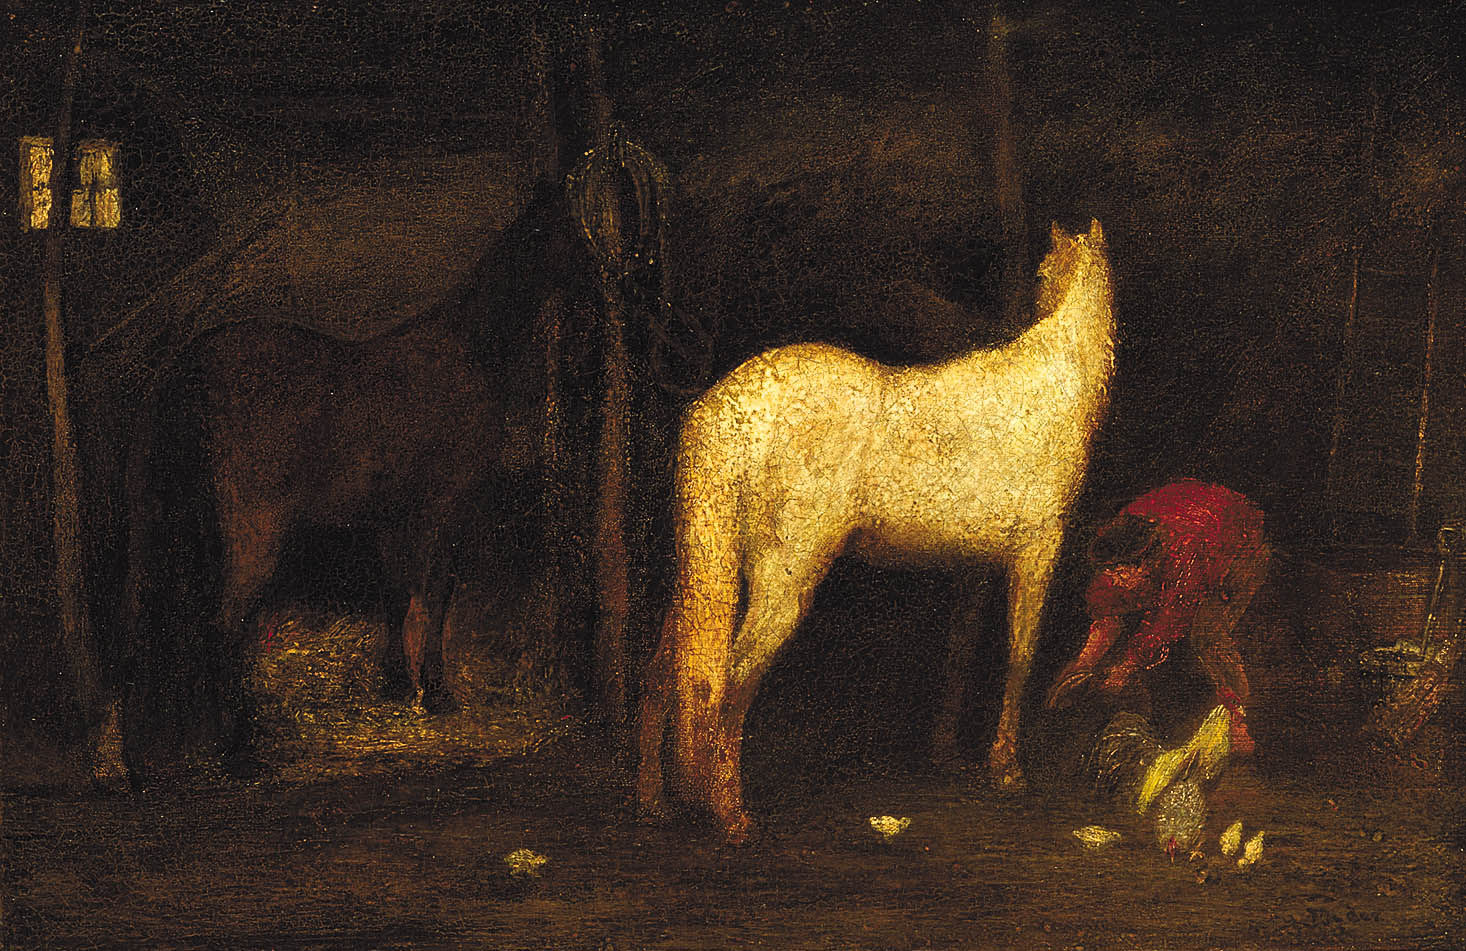 Fox in the stable hentay movie